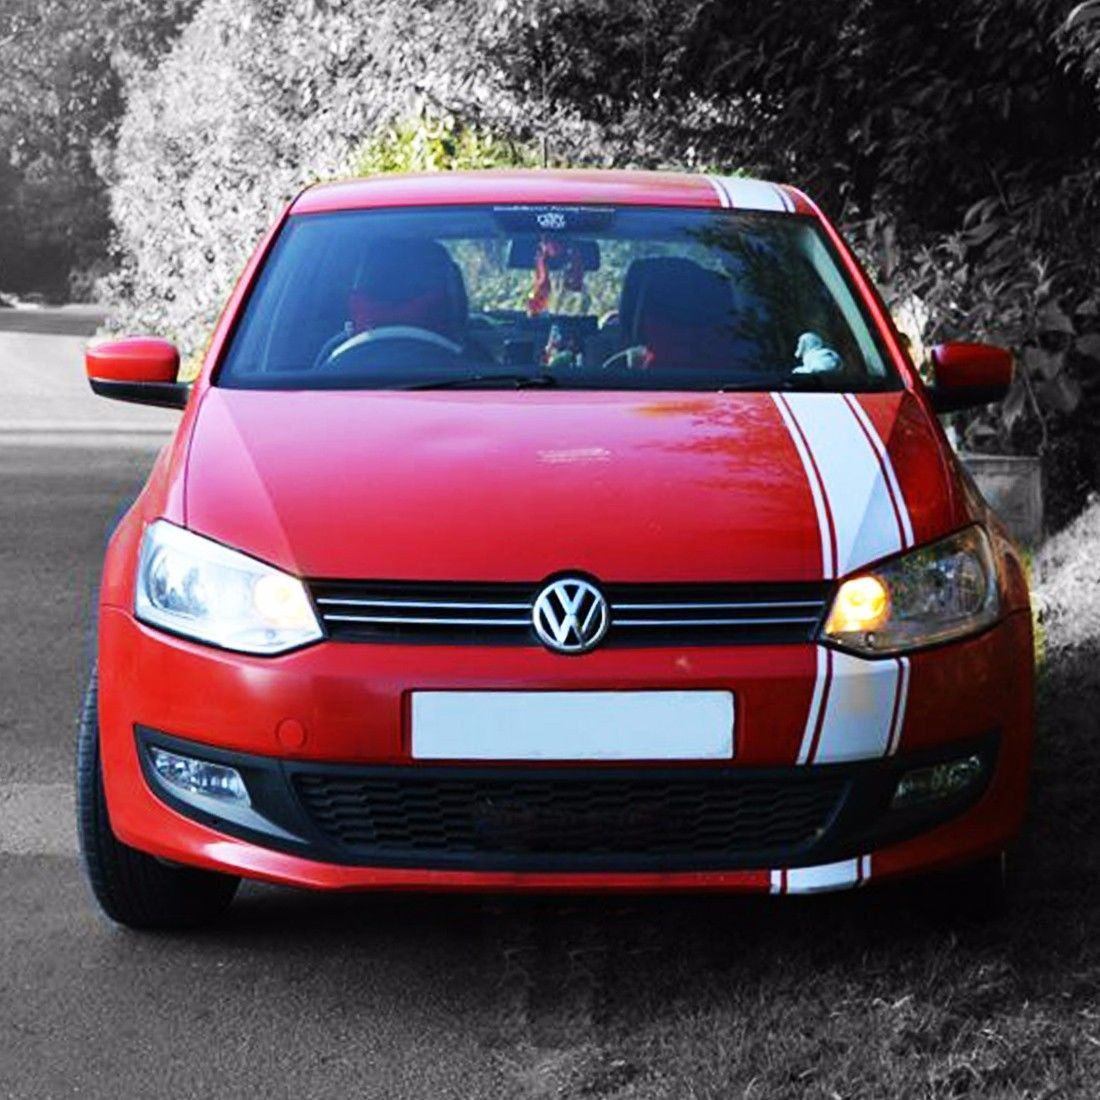 Decal Sticker Graphic Racing Stripe Kit For Volkswagen Vw Polo 2009 2016 Hood Volkswagen Polo Stripe Kit Racing Stripes [ 1100 x 1100 Pixel ]